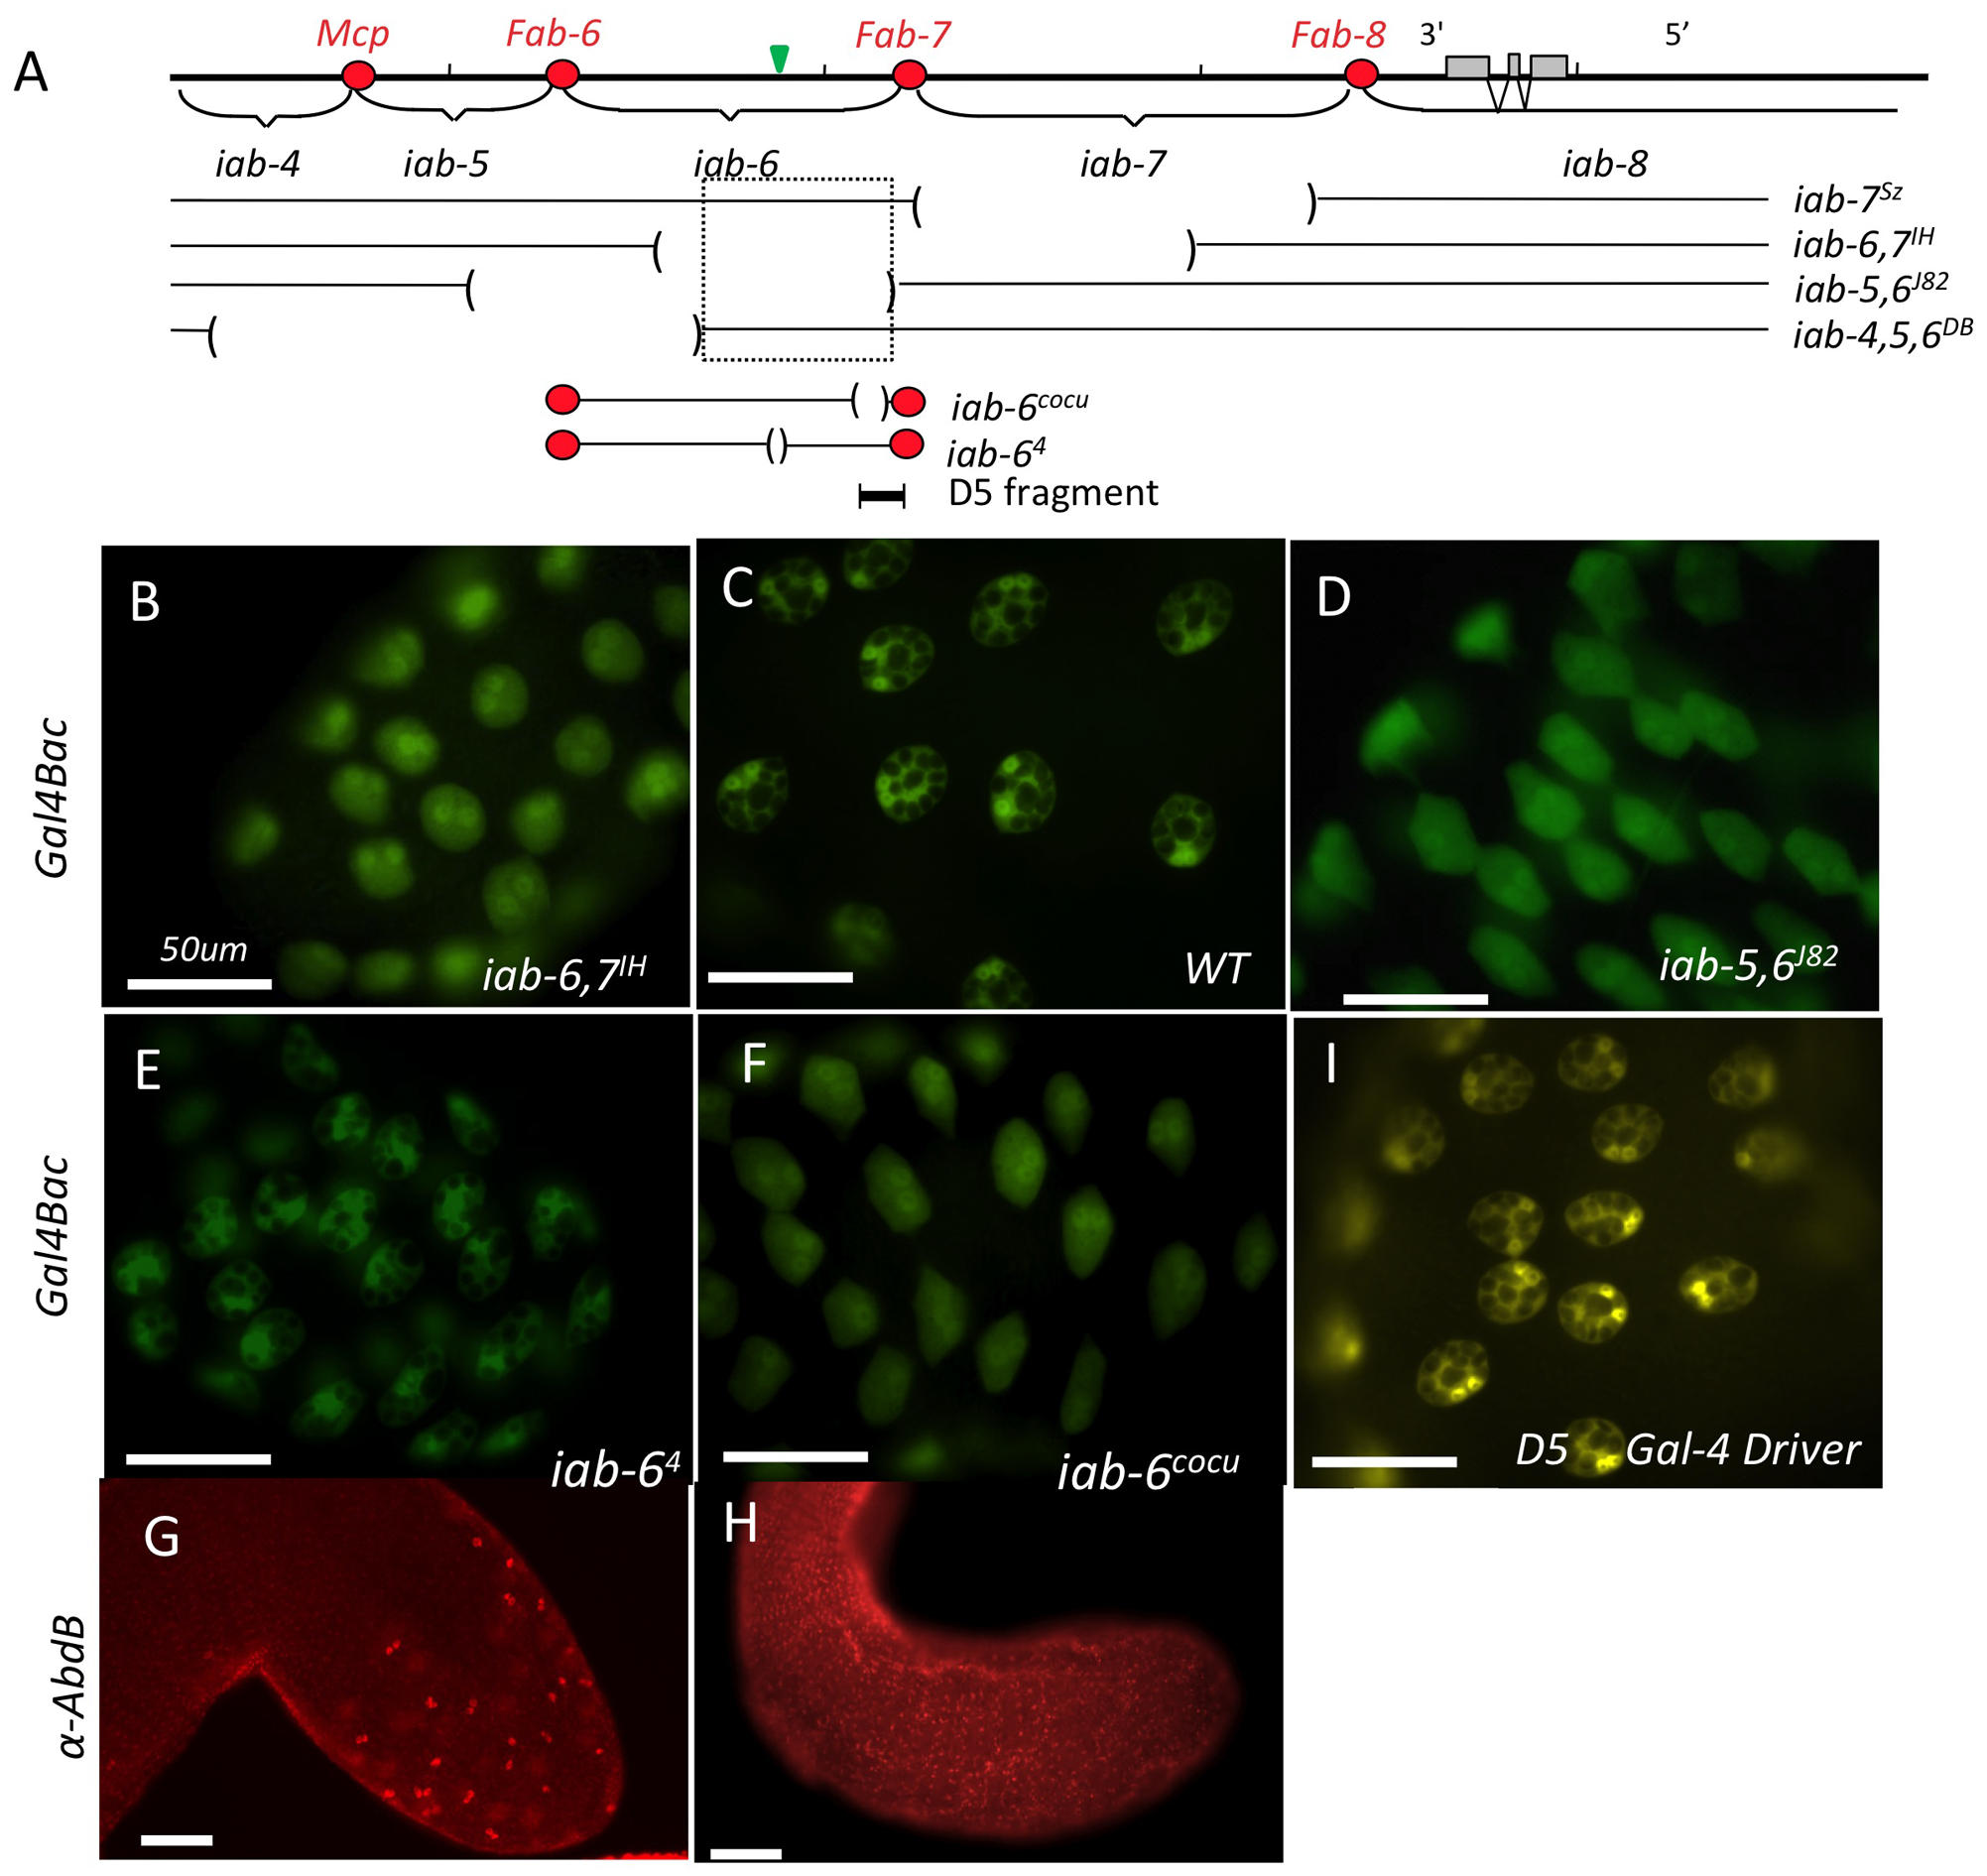 Mutants affecting <i>Abd-B</i> expression in the accessory gland.